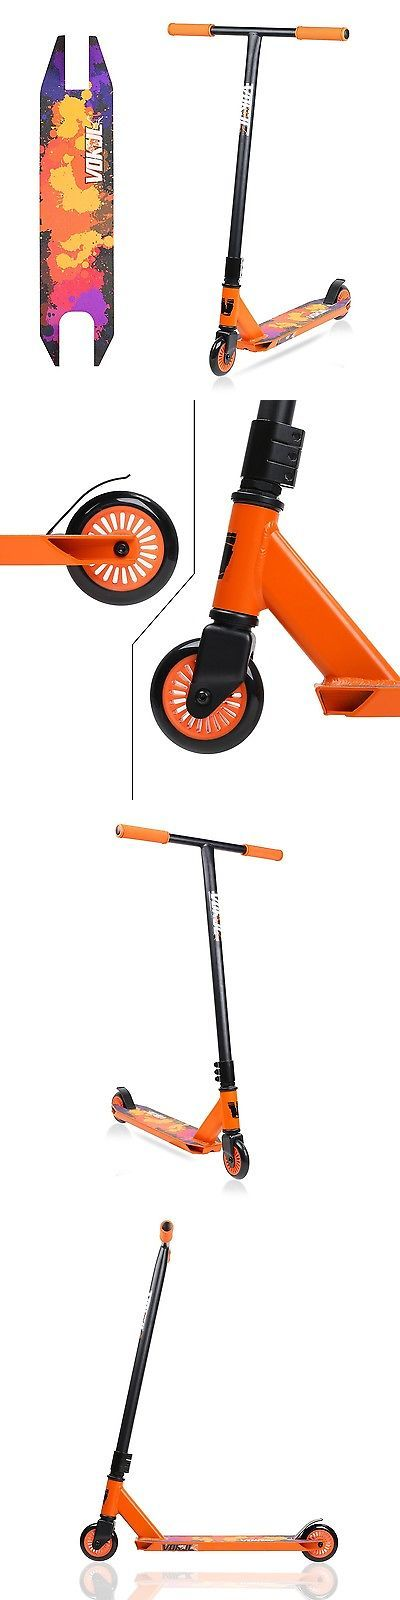 Kick Scooters 11331: Vokul Pro Stunt Lightweight, Super-Tough Aluminum Stunt Kick Scooter New Tg-6061 -> BUY IT NOW ONLY: $82.19 on eBay!